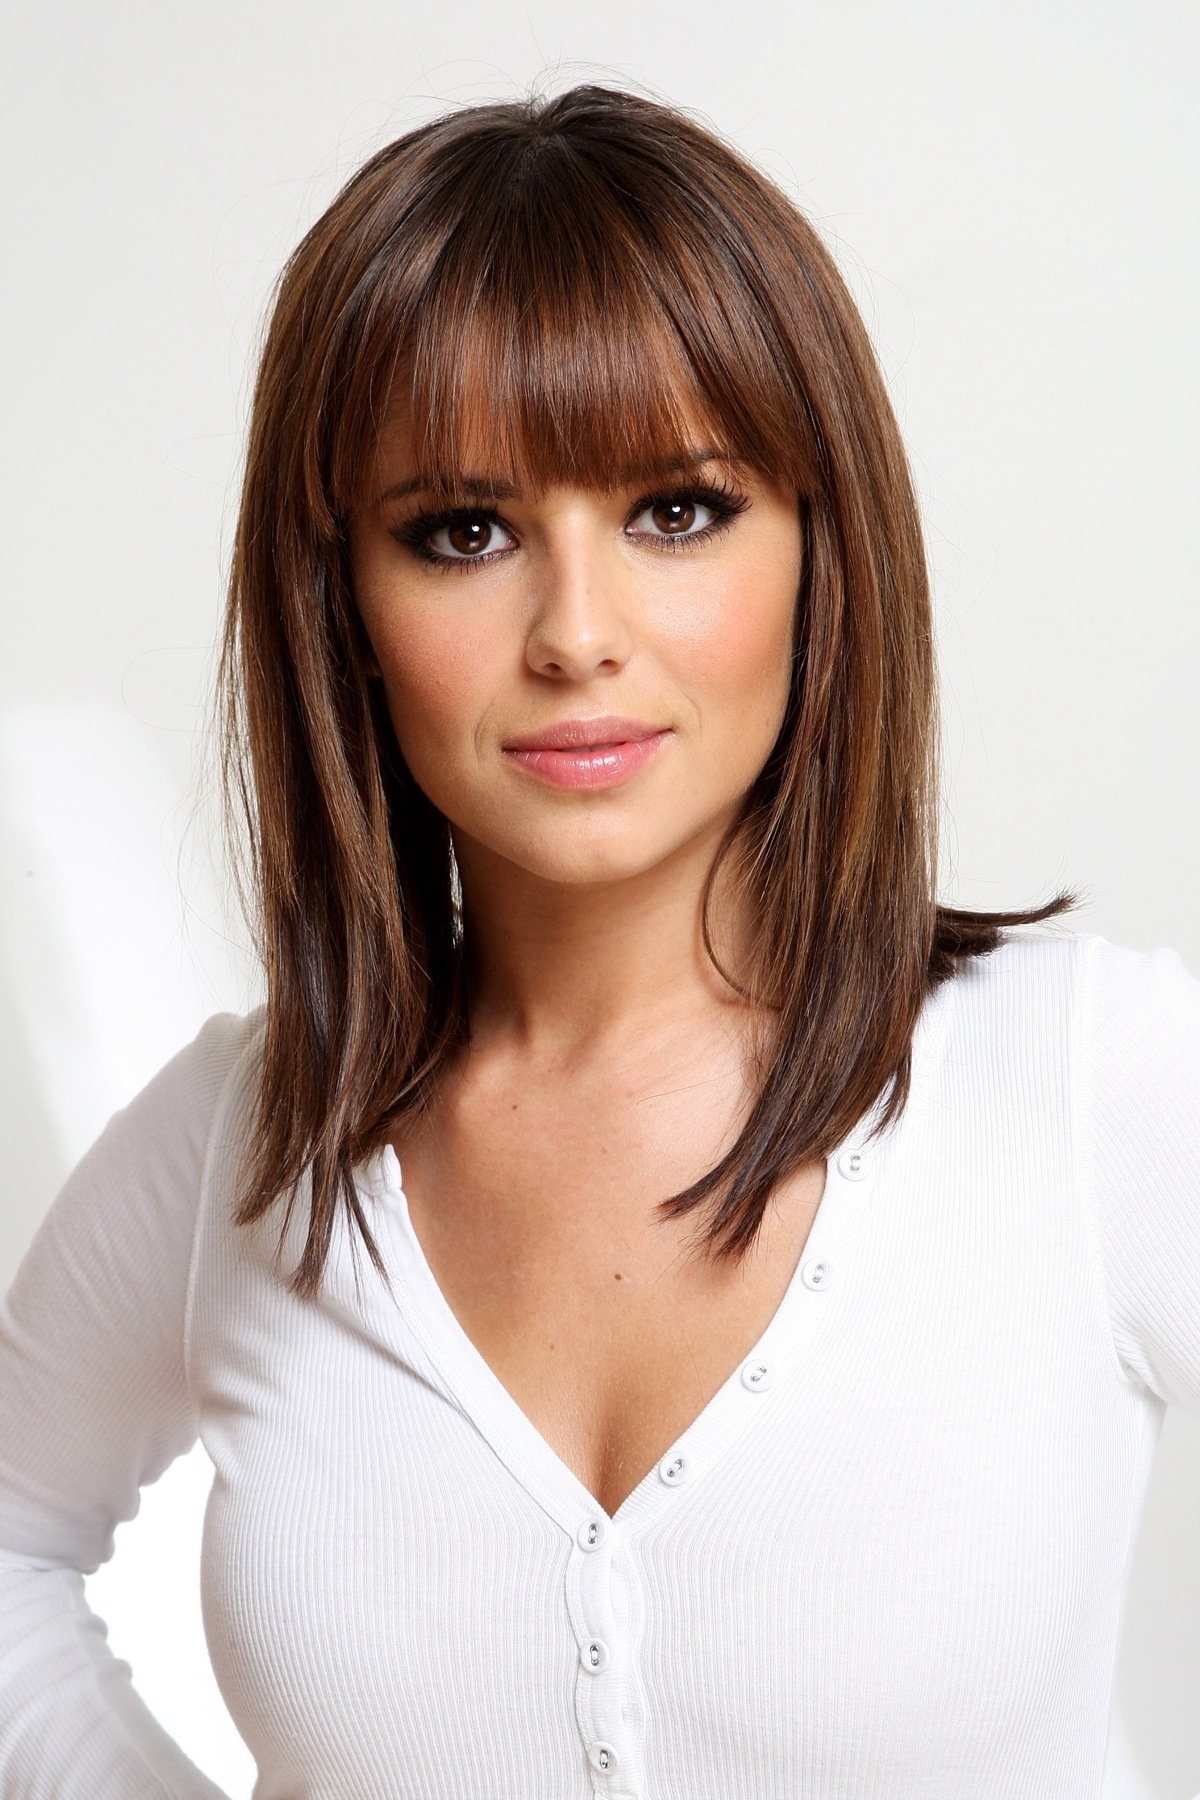 Cheryl Cole - Cheryl Cole Photo (4578452) - Fanpop